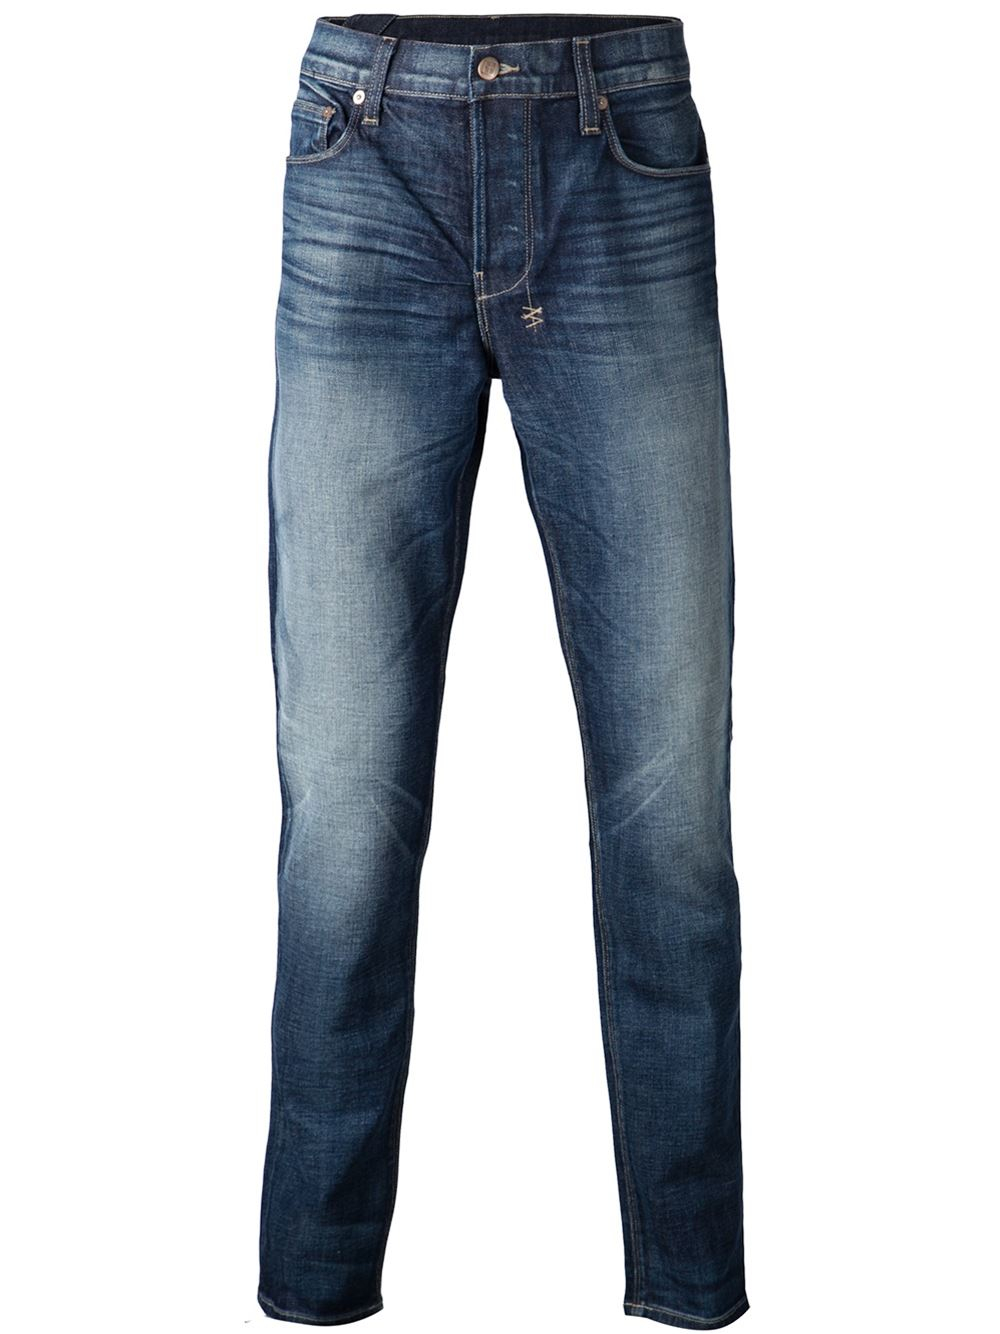 ksubi stone washed jeans in blue for men lyst. Black Bedroom Furniture Sets. Home Design Ideas